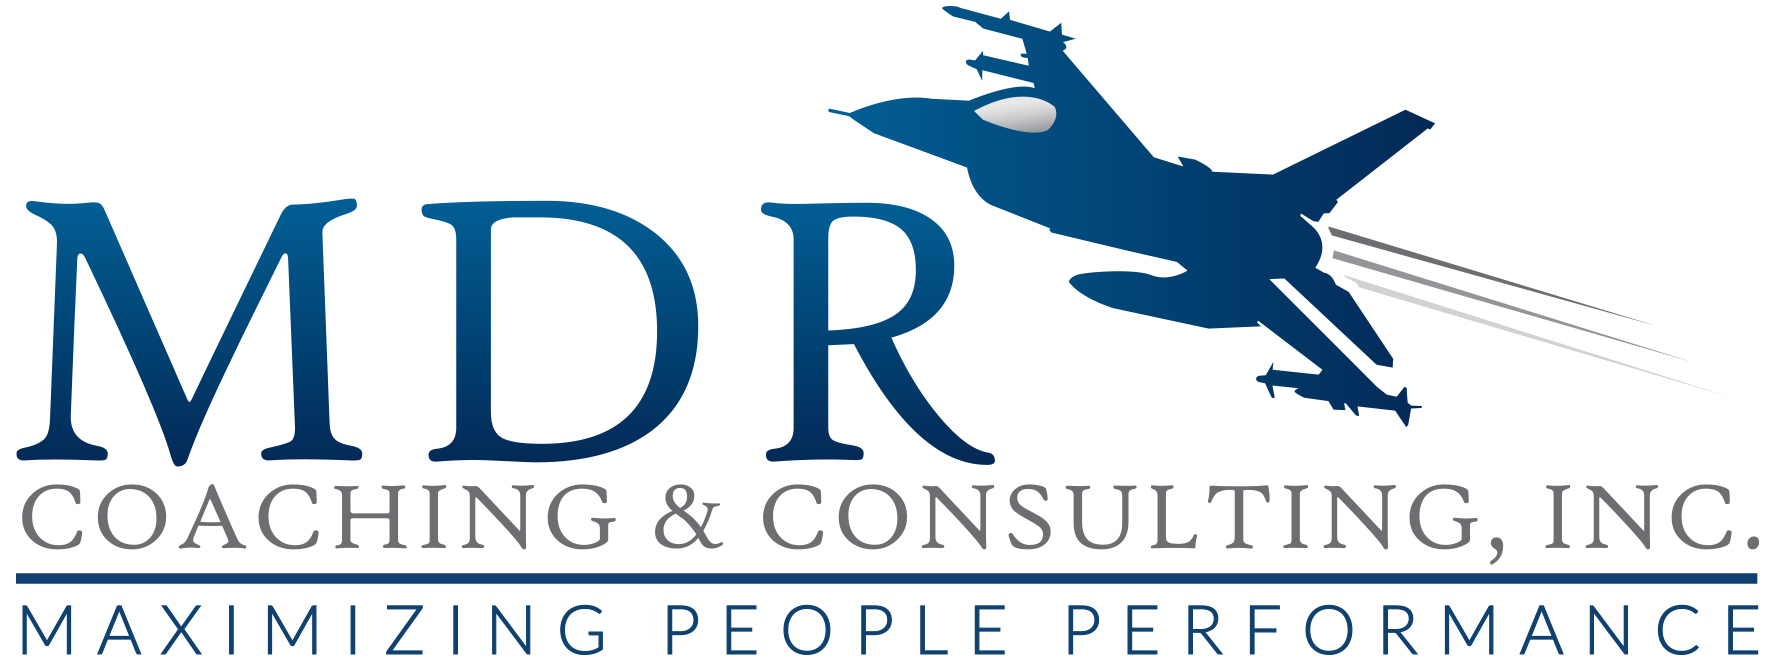 MDR Coaching & Consulting, Inc